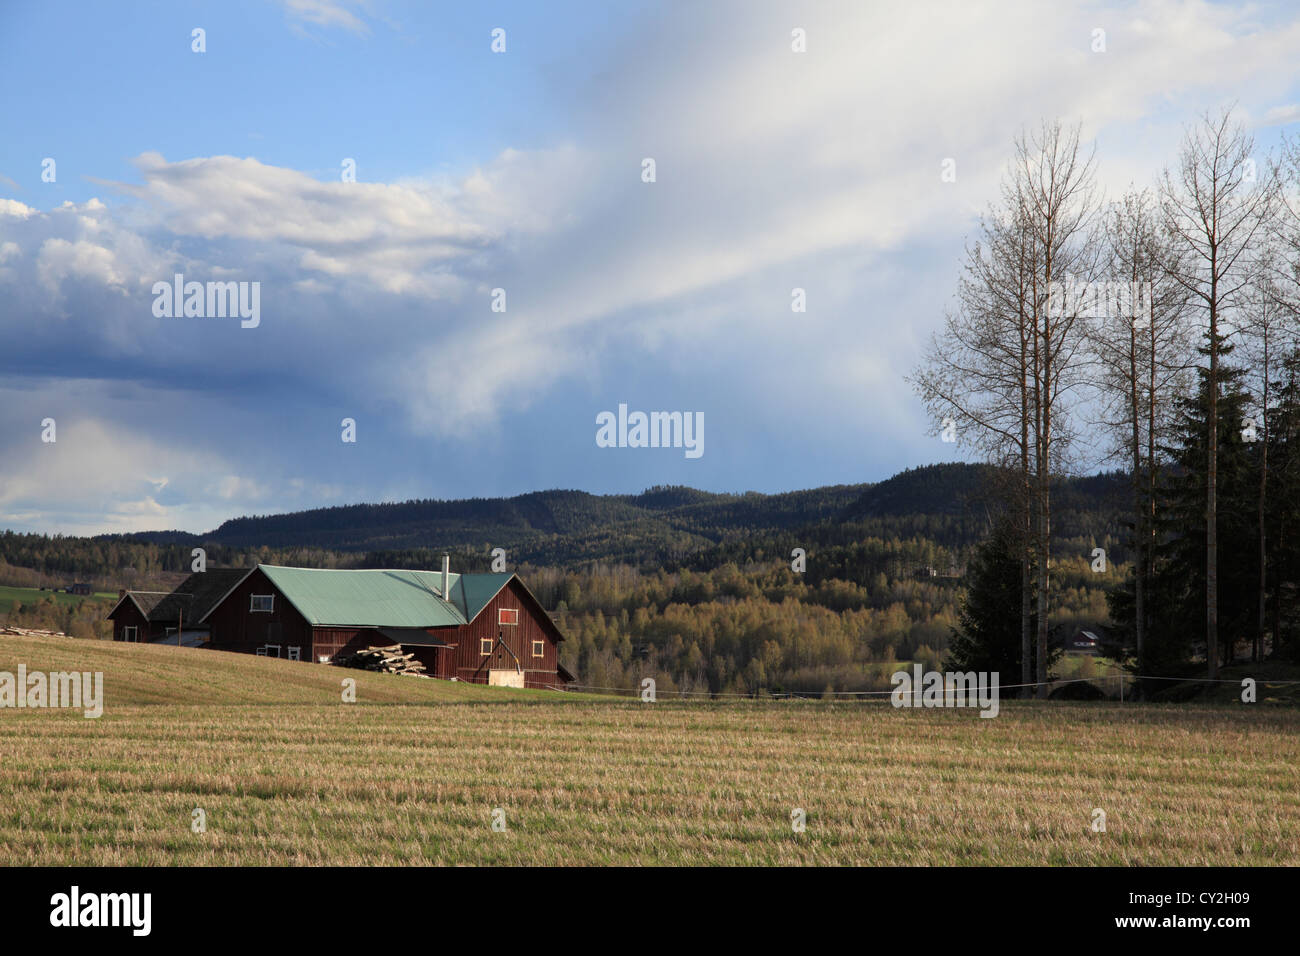 Swedish farm houses on a fine spring afternoon. Valley of river Angermanaelv, Vaesternorrland, Sweden - Stock Image